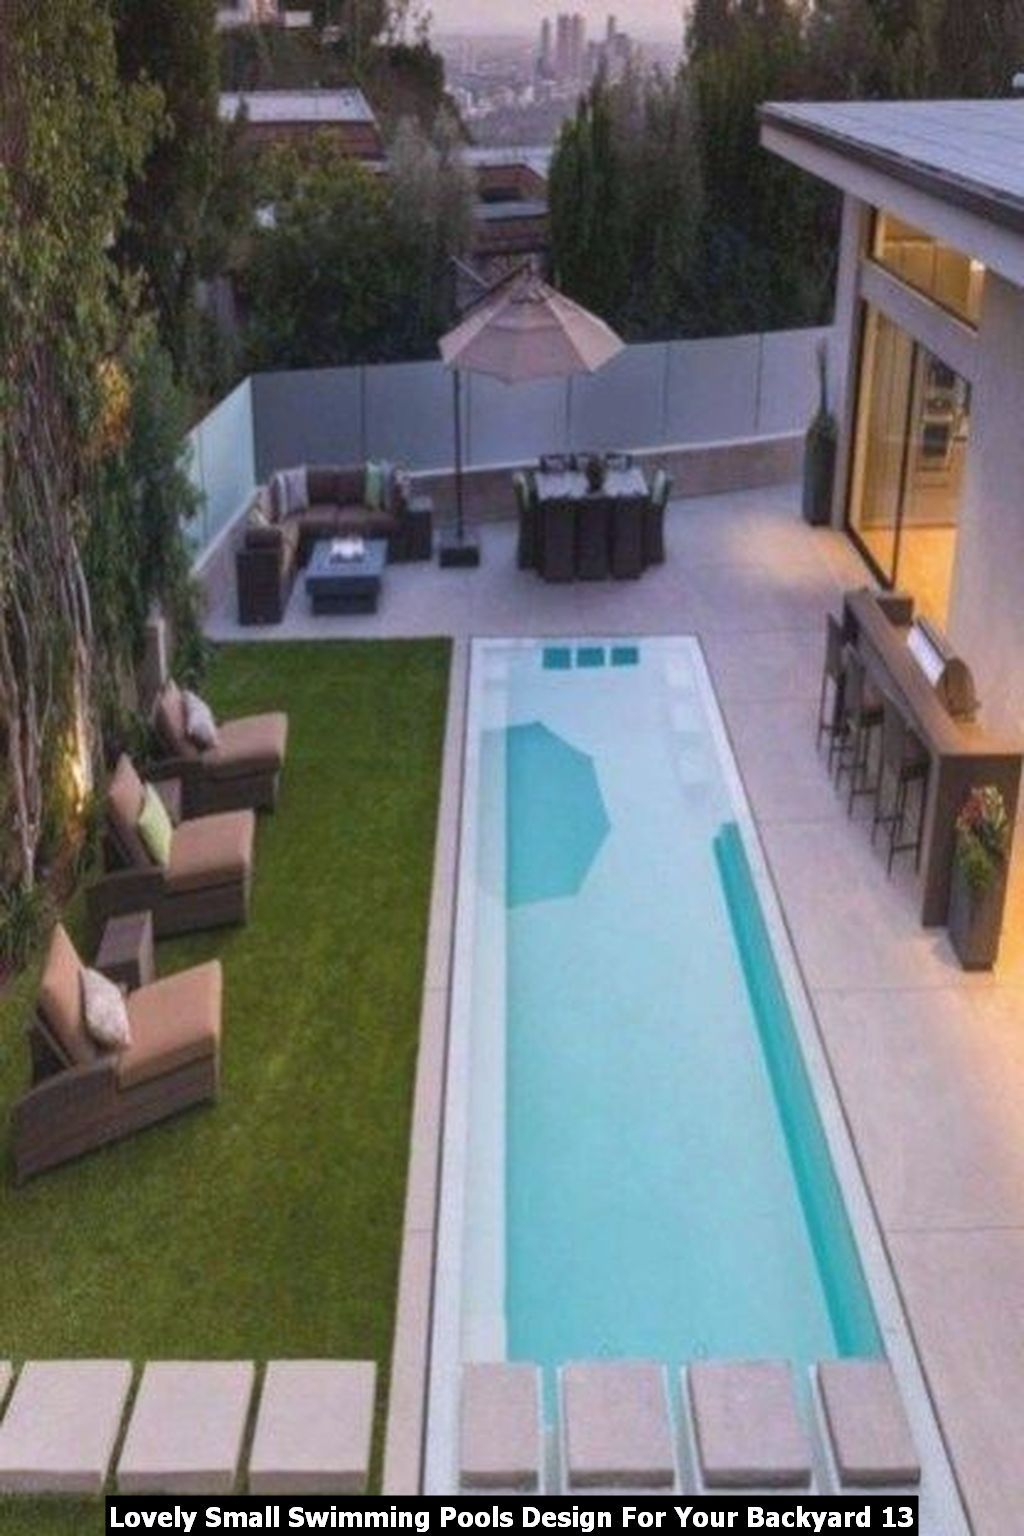 Lovely Small Swimming Pools Design For Your Backyard Homyhomee Small Backyard Pools Swimming Pools Backyard Lap Pool Designs